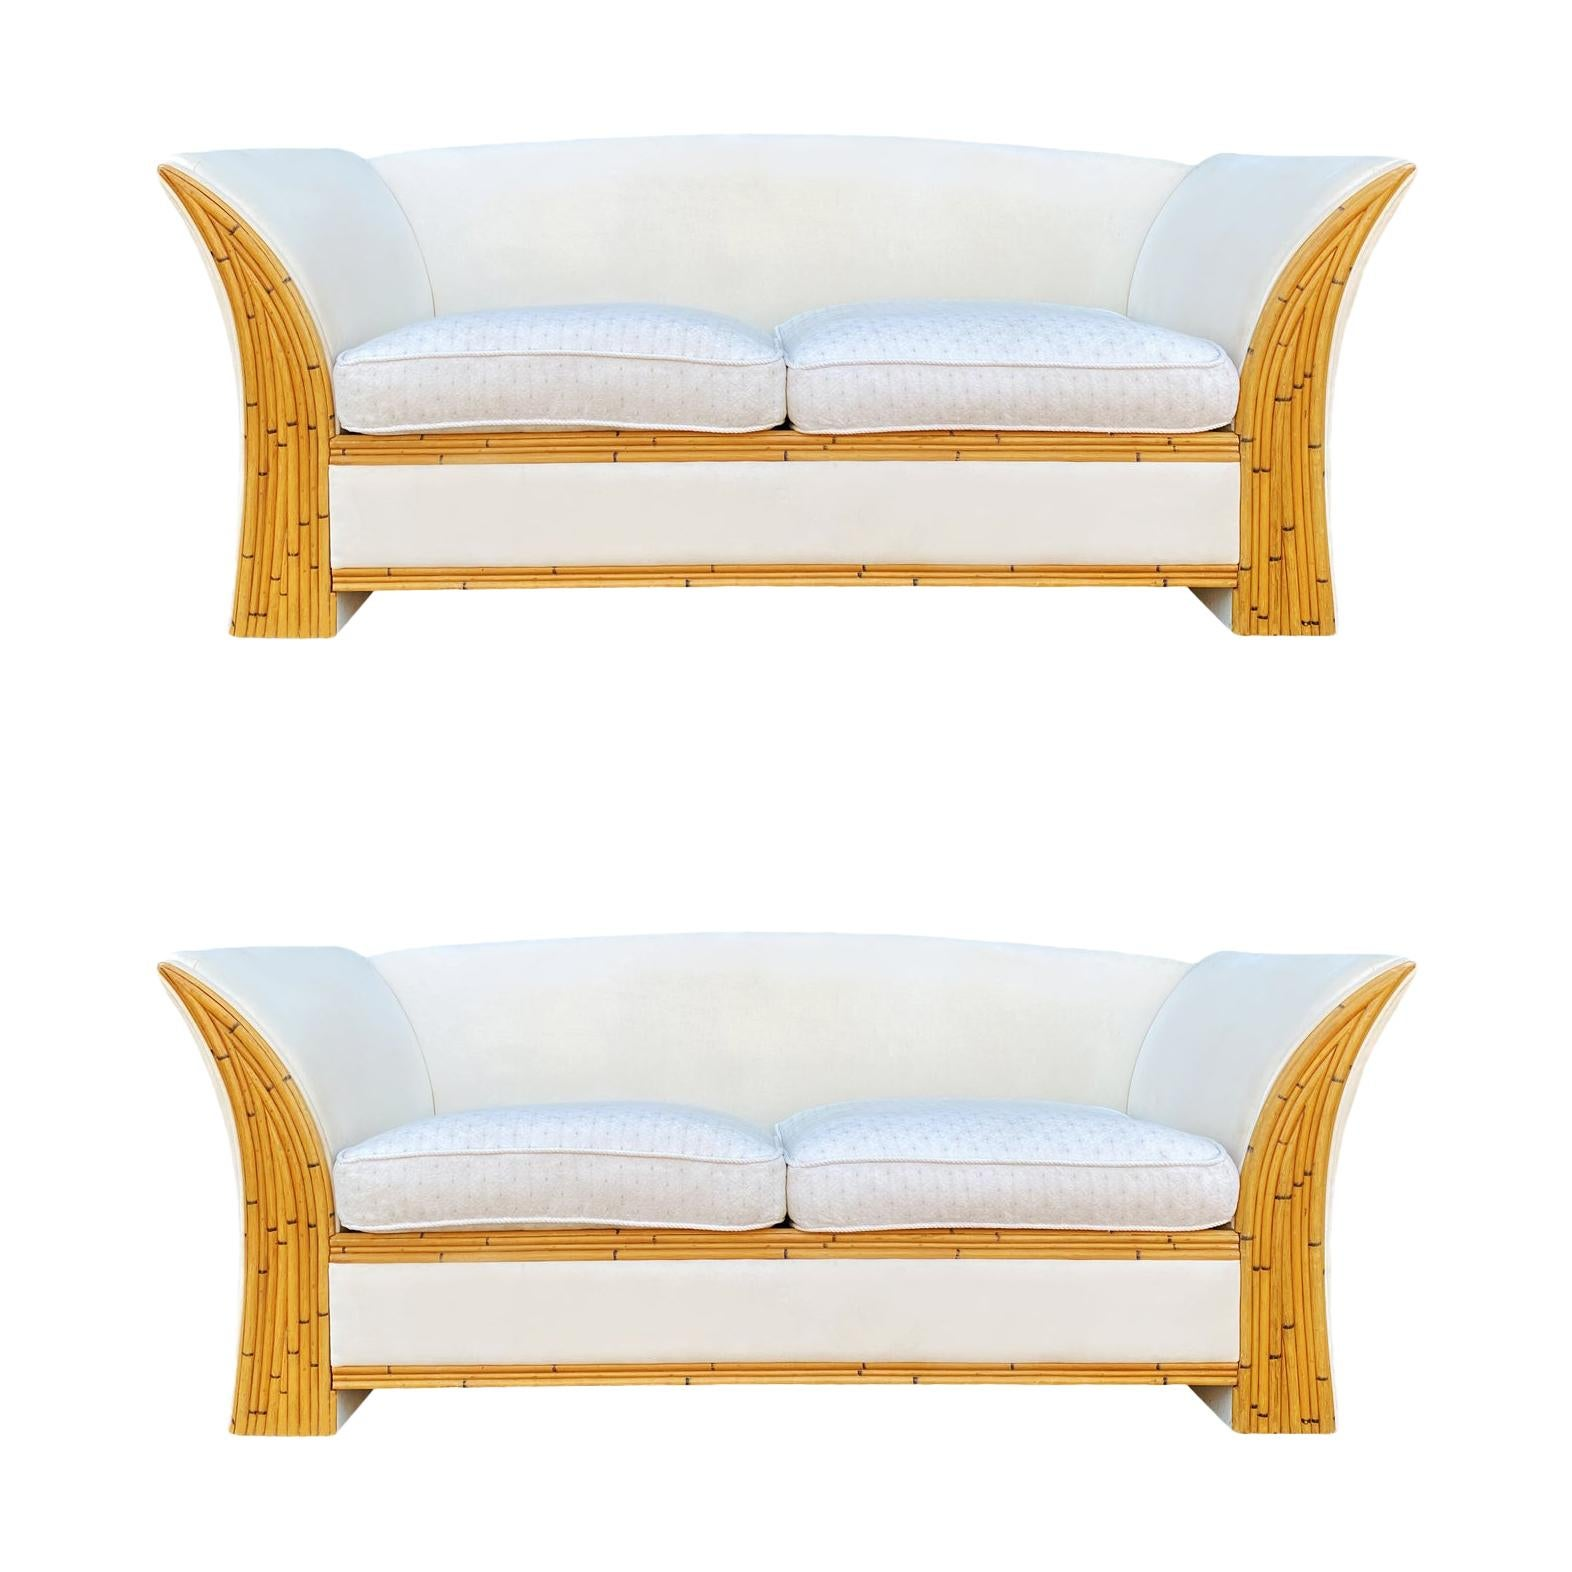 Matching Pair of Mid-Century Modern Bamboo Reed & White Sofas or Loveseats